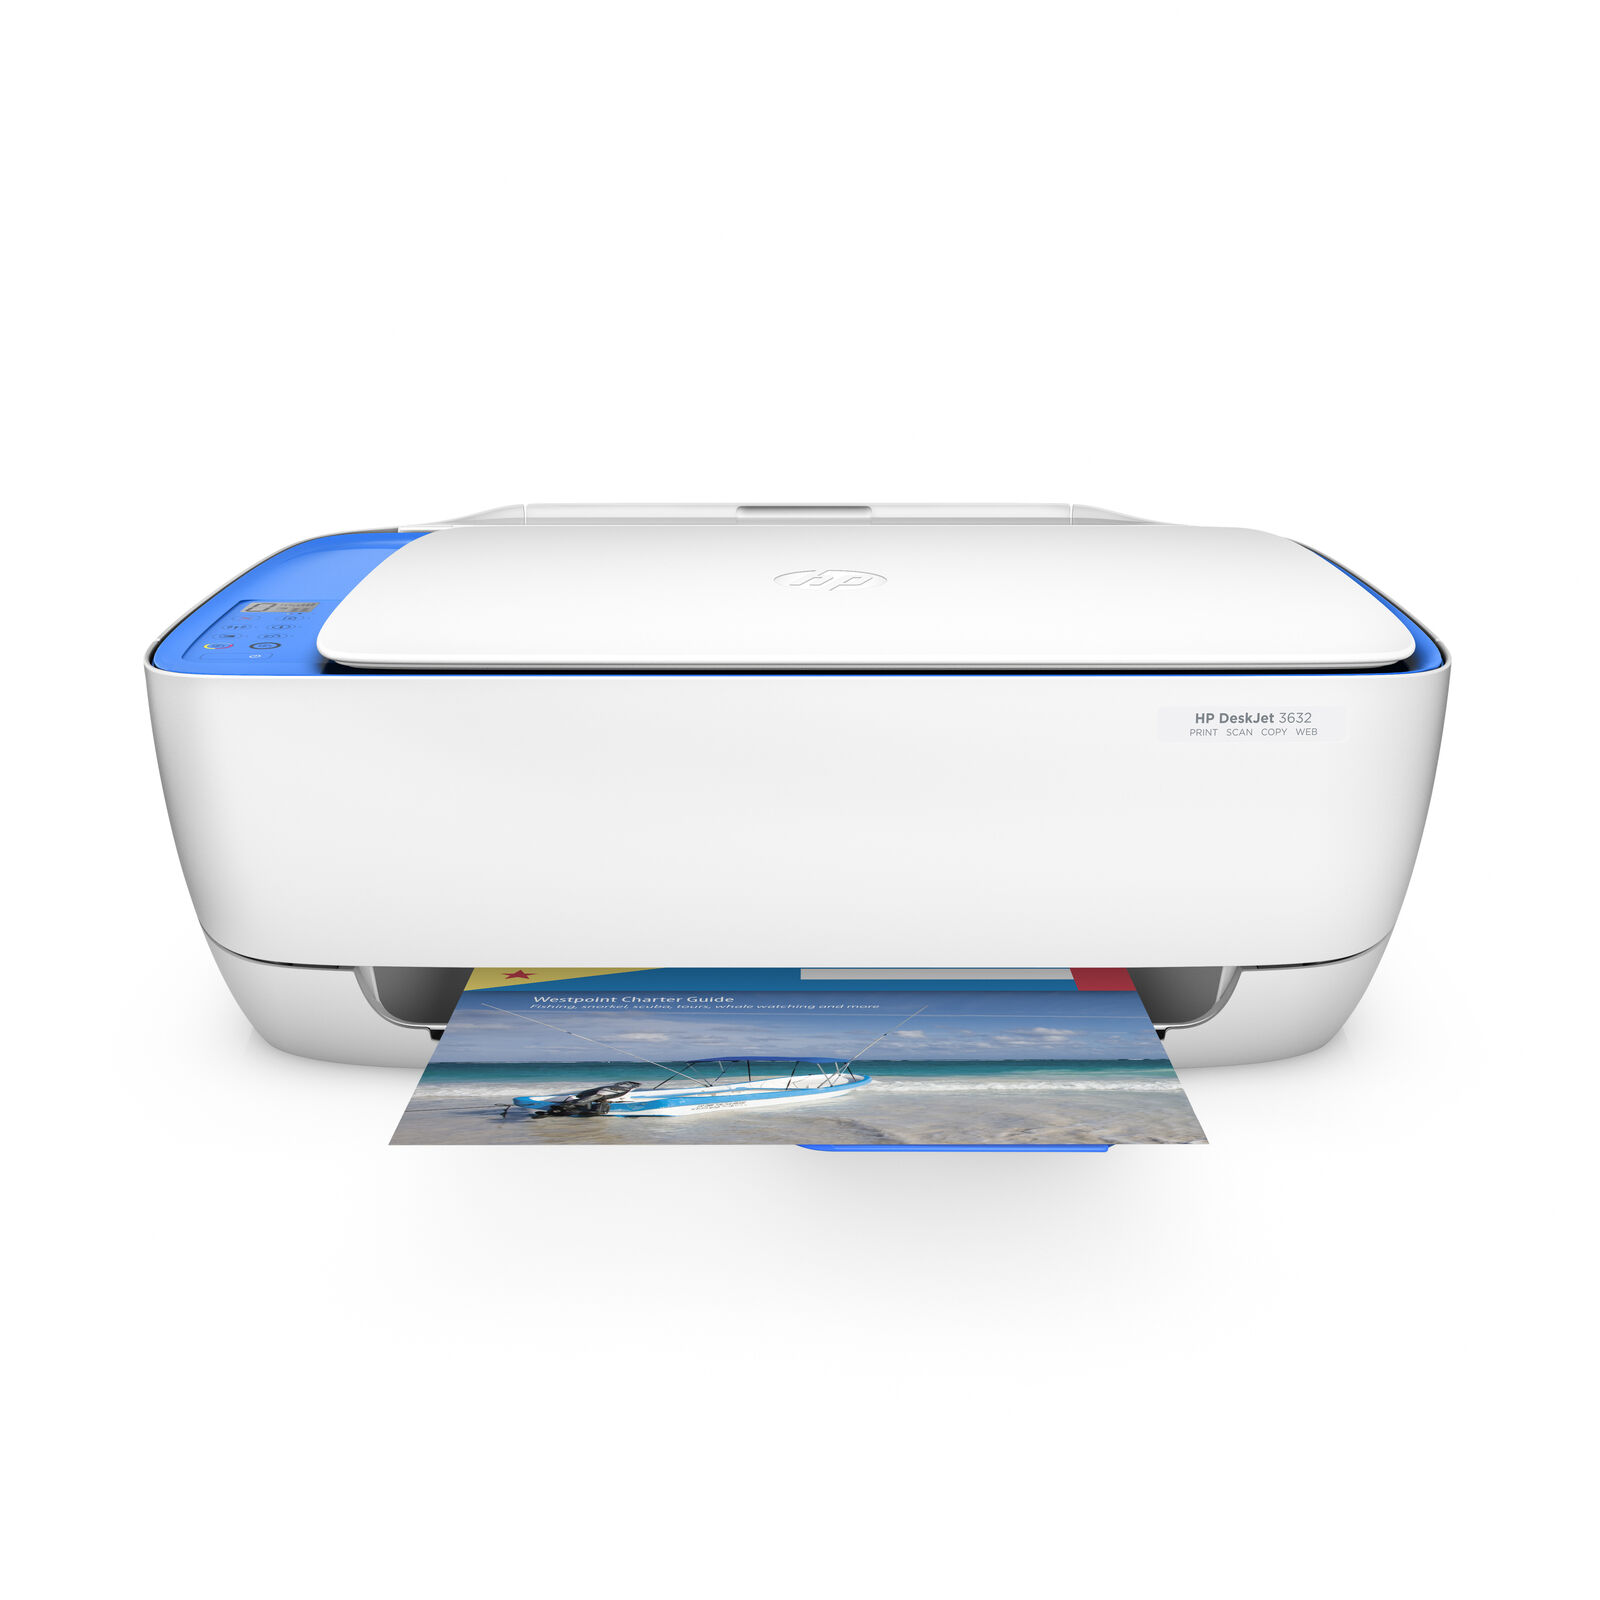 HP DeskJet 3632 Wireless All-in-One Compact Printer, INK INC